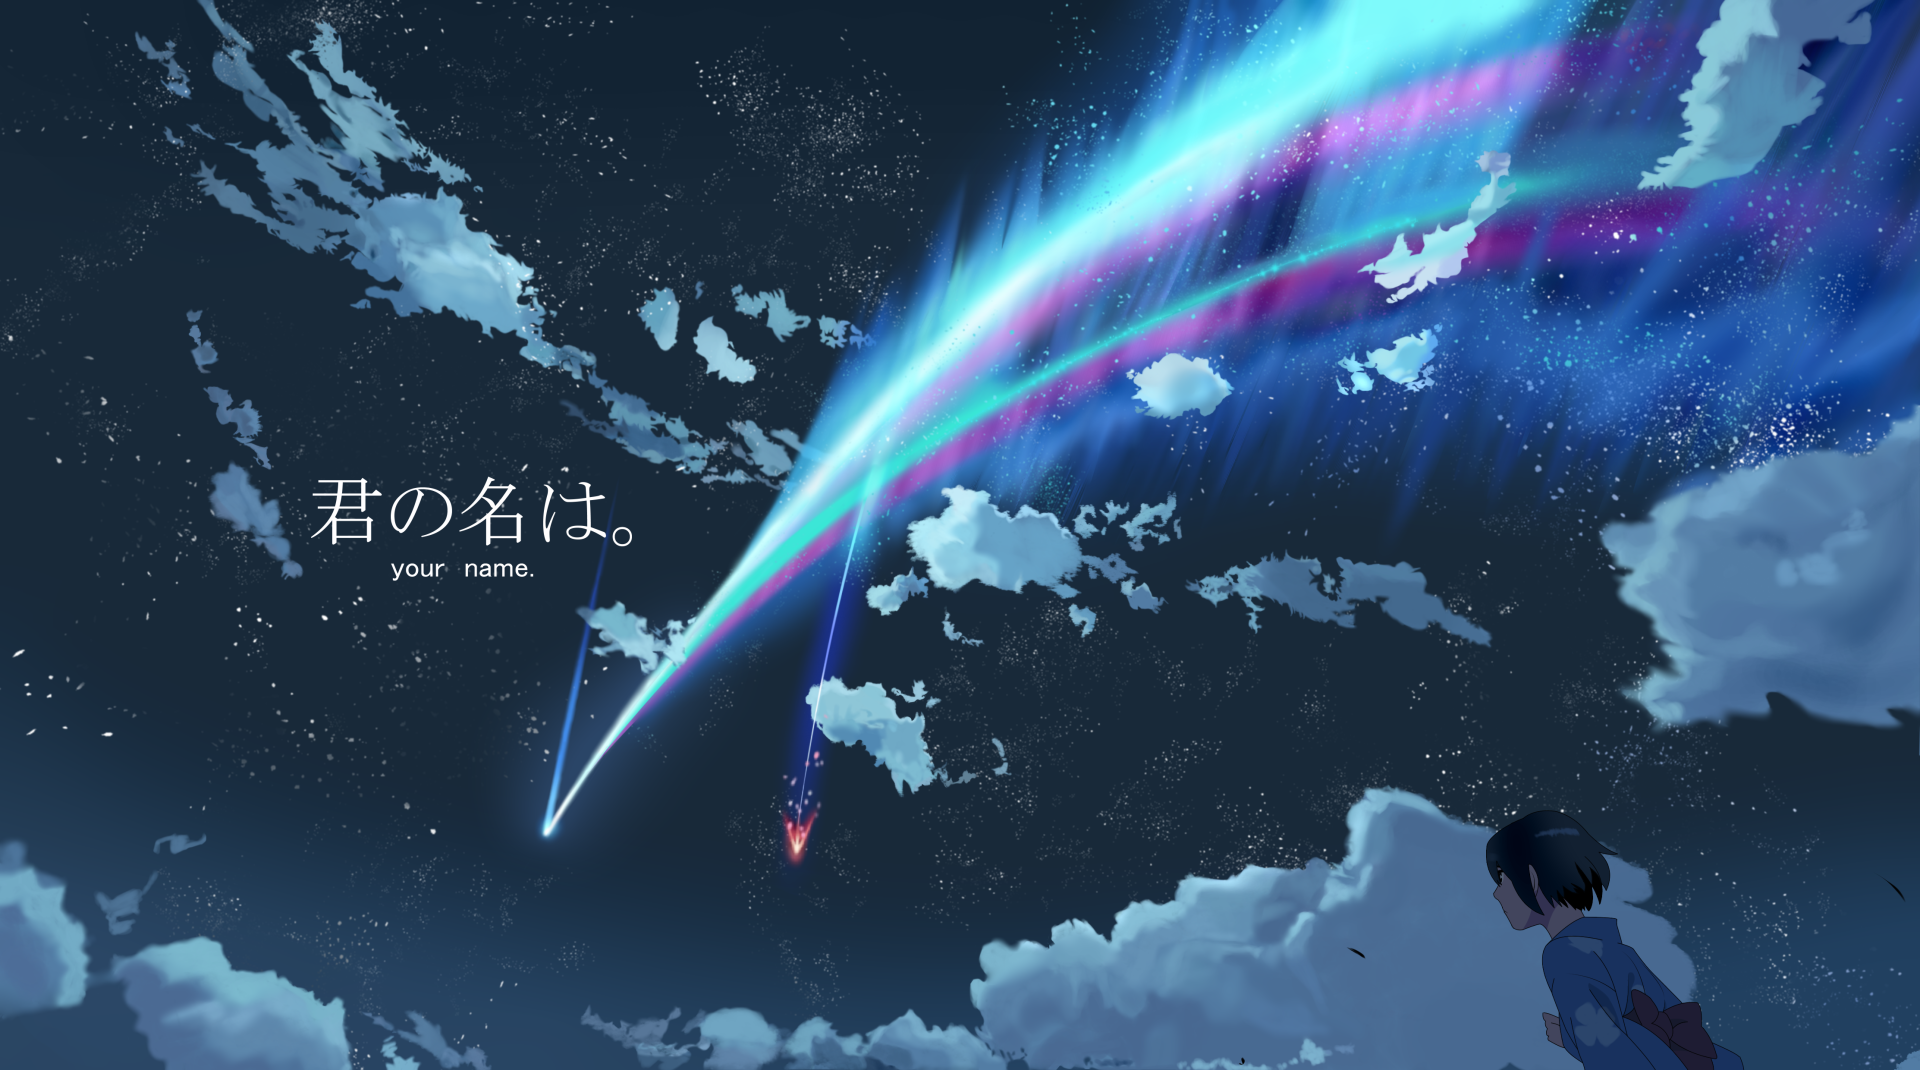 Your name 4k ultra hd wallpaper background image - Anime phone wallpaper 4k ...